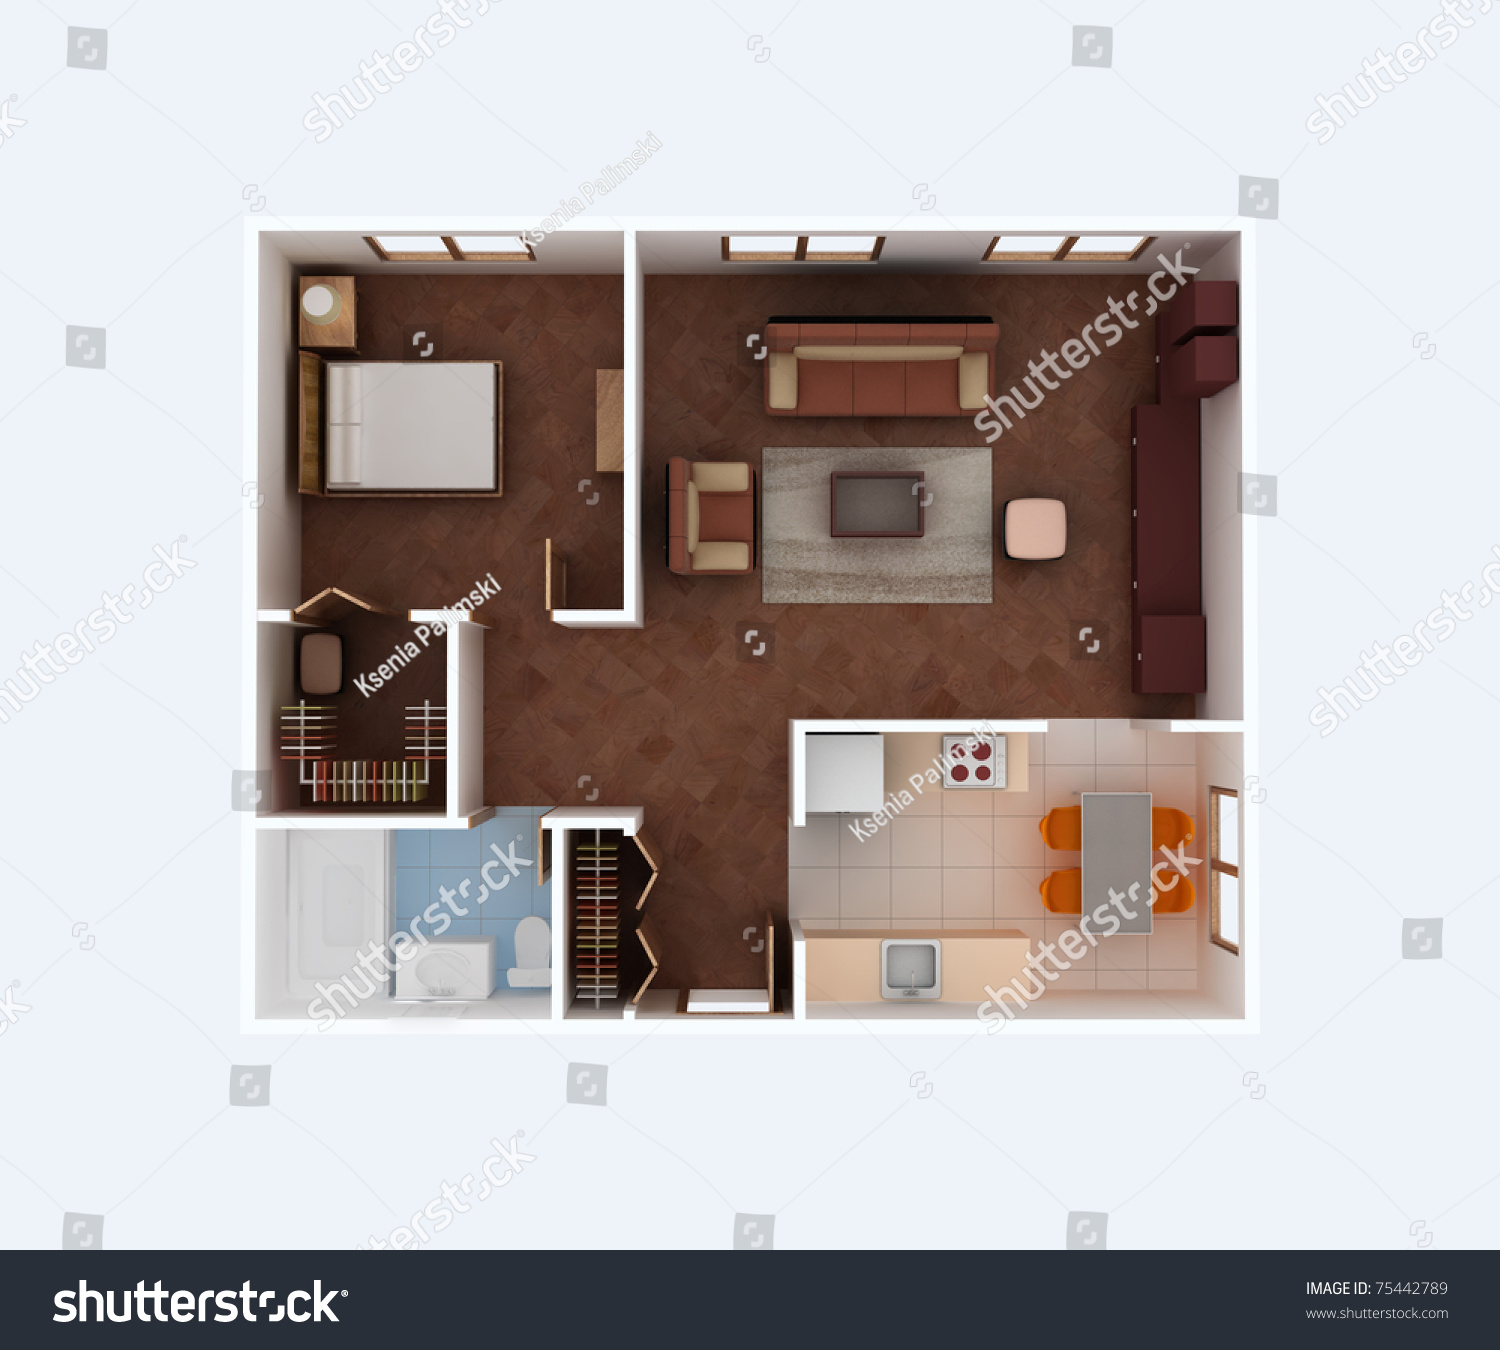 Plan view of a house clear 3d interior design kitchen for Dining room 3d view